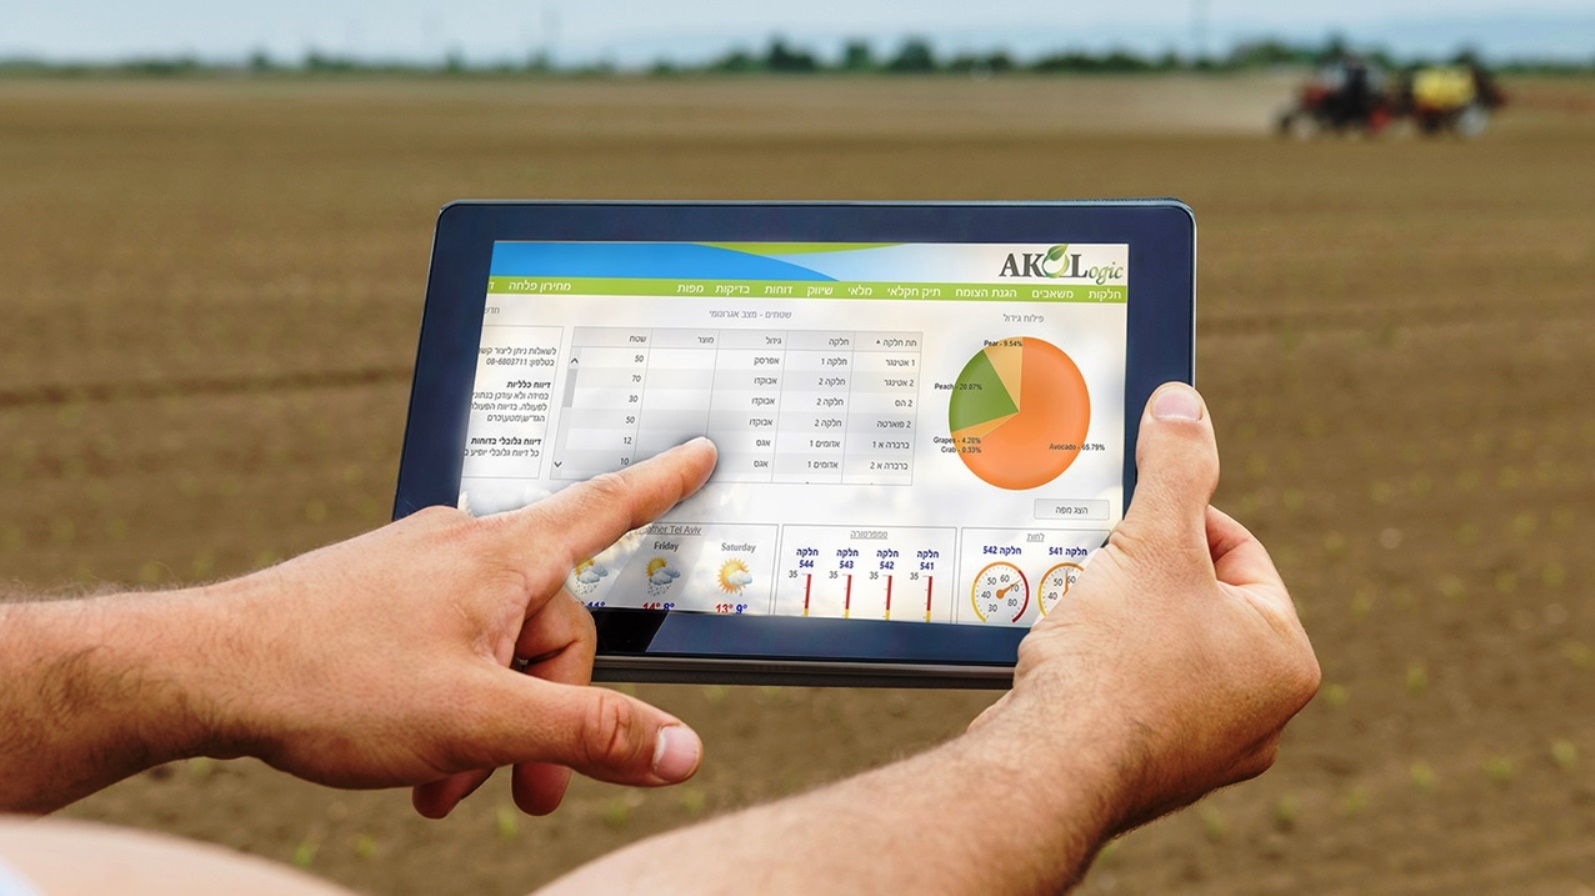 The AKOLogic system helps farmers manage any kind of crop according to any country's import regulations. Photo: courtesy